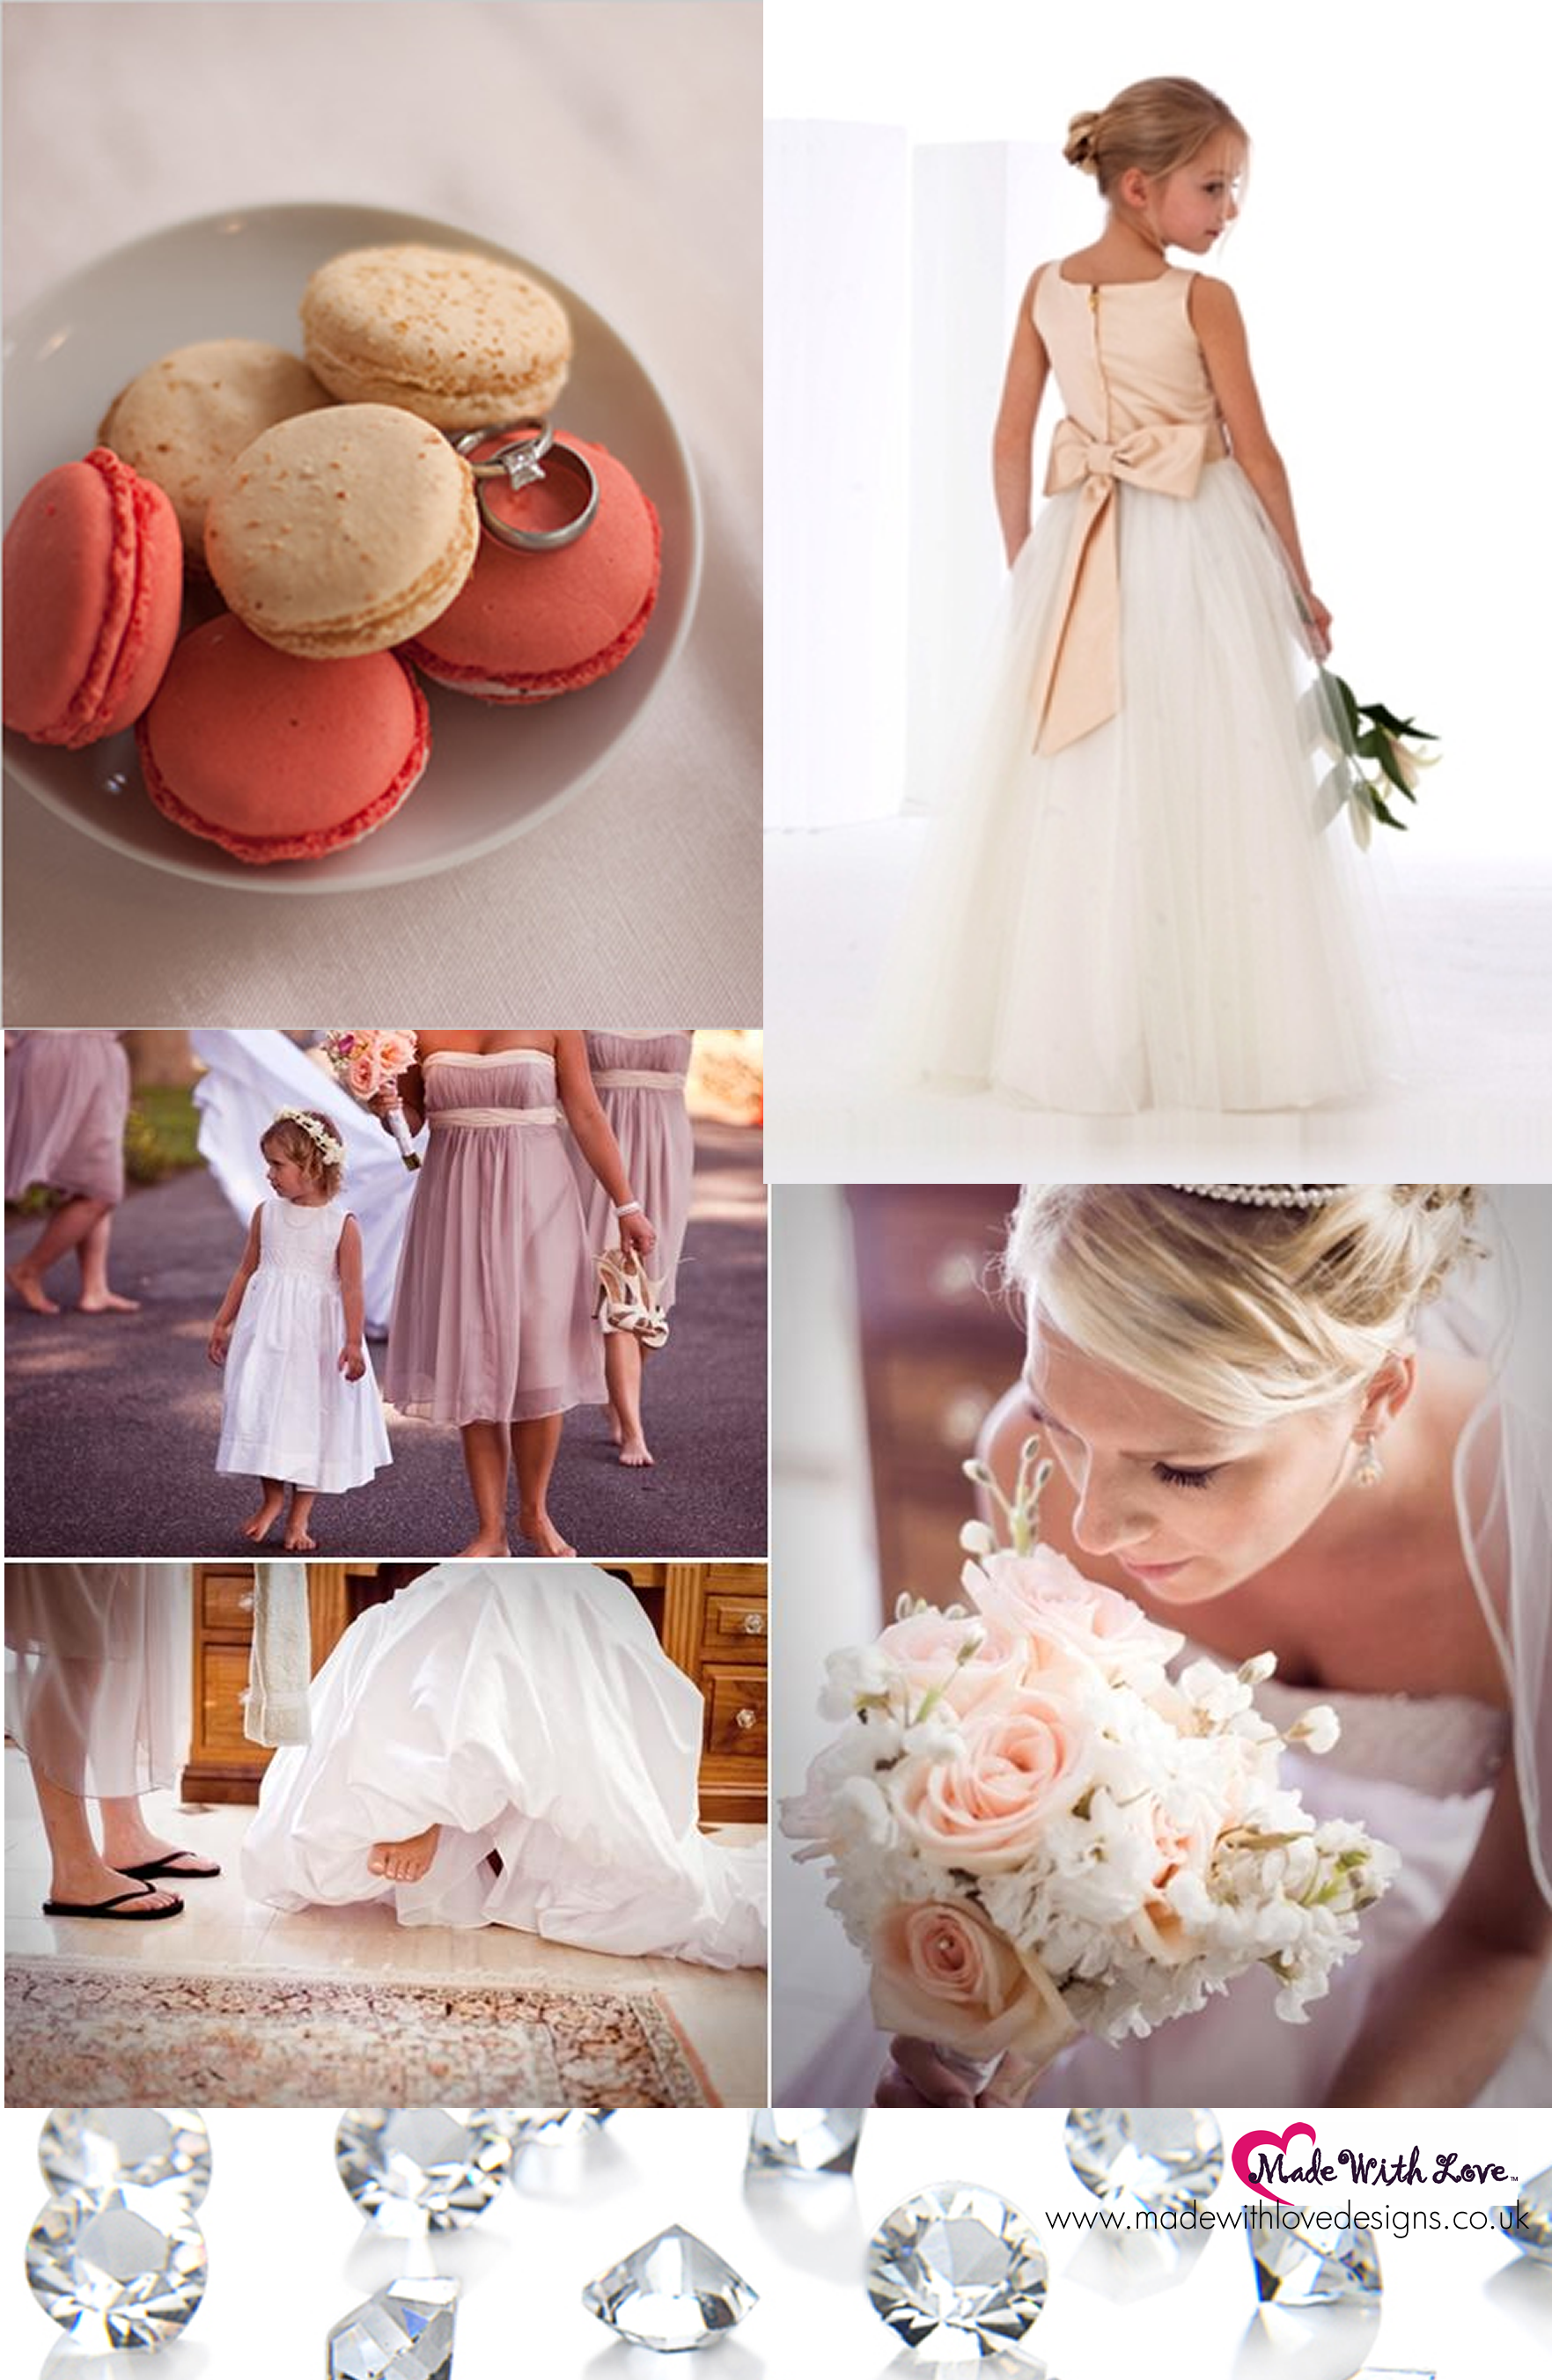 Google Image Result for http://mwlcards.files.wordpress.com/2010/06/peach-wedding-theme.png